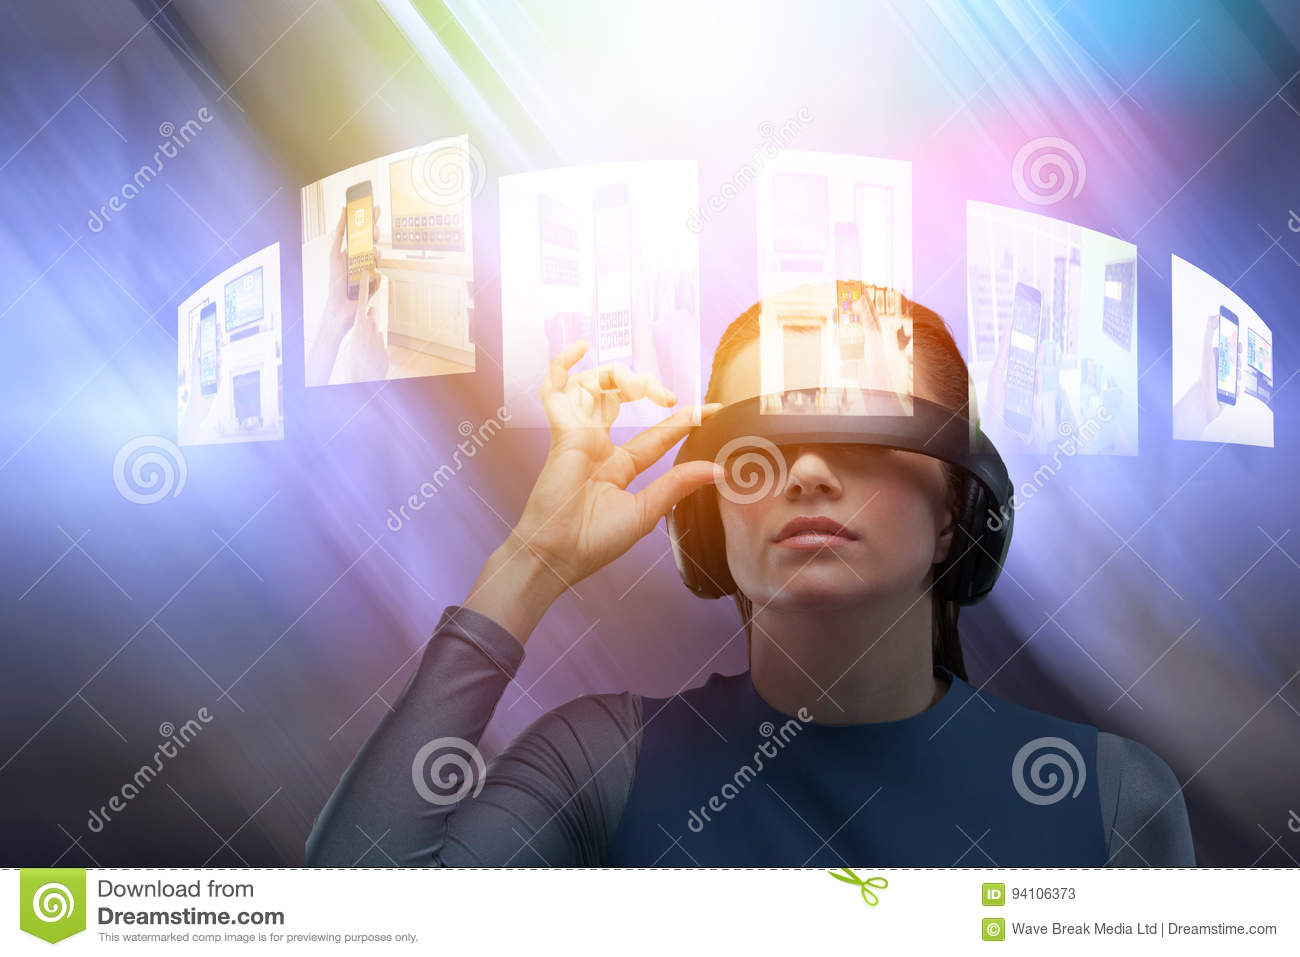 5eb6c96887b Close up of woman trying virtual reality simulator against table and empty  chairs in office